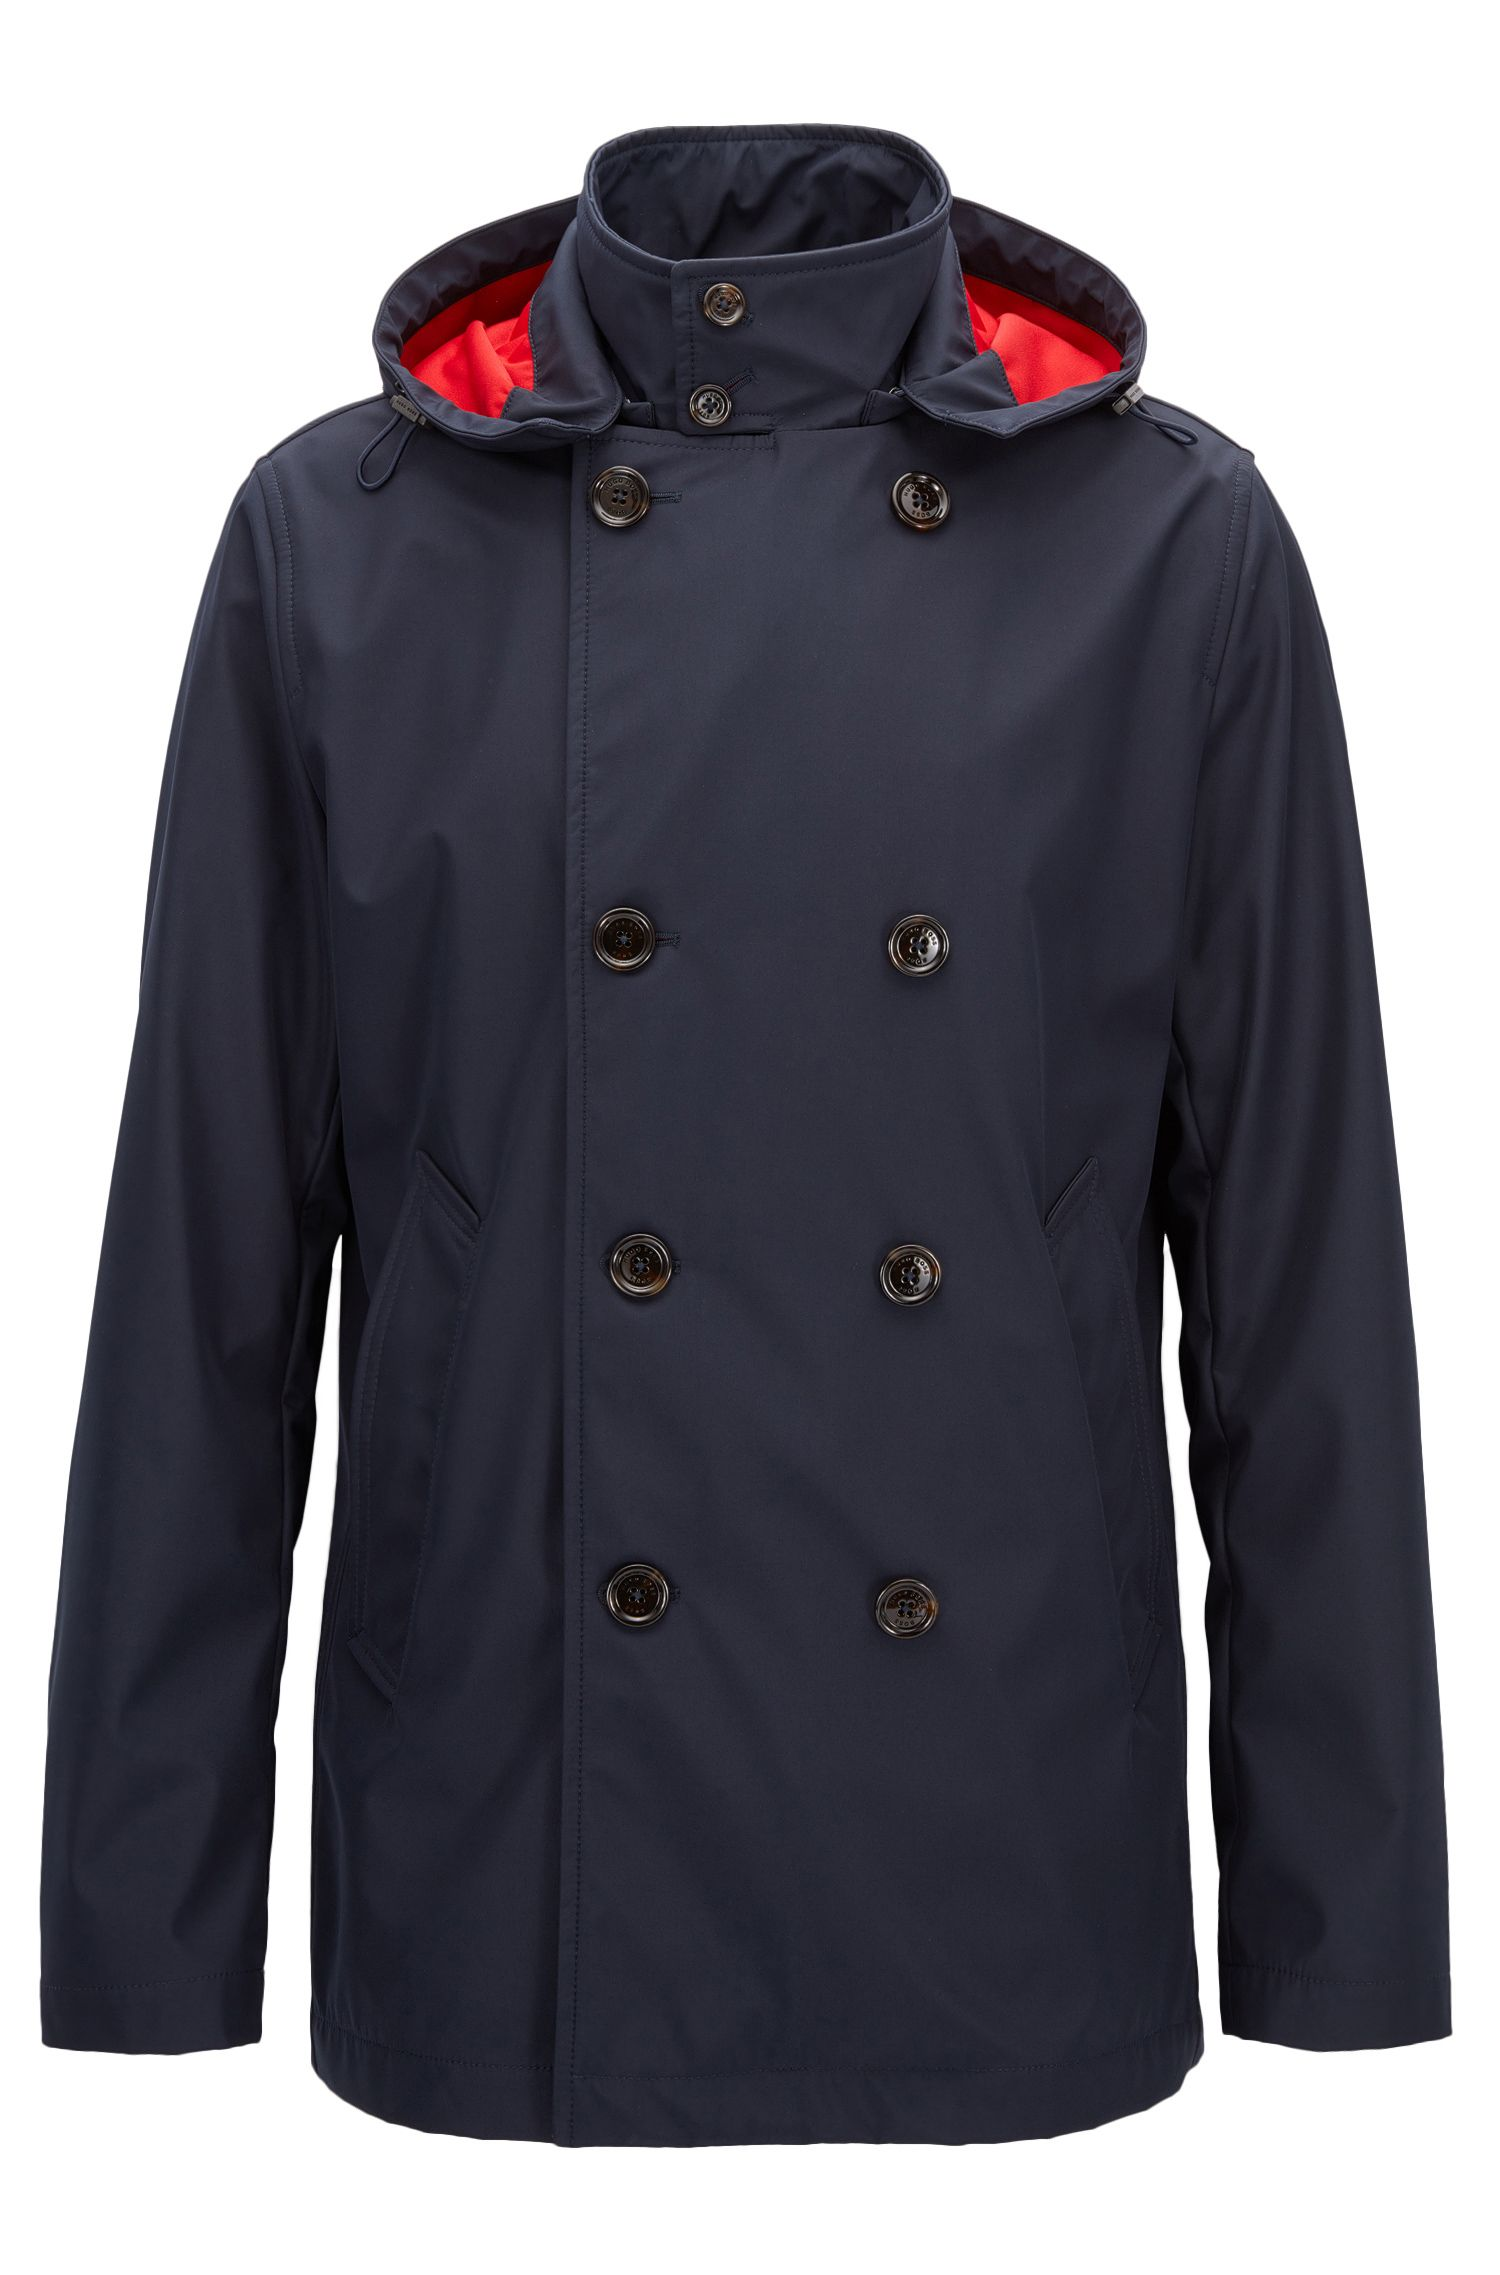 Manteau Regular Fit en tissu technique imperméable